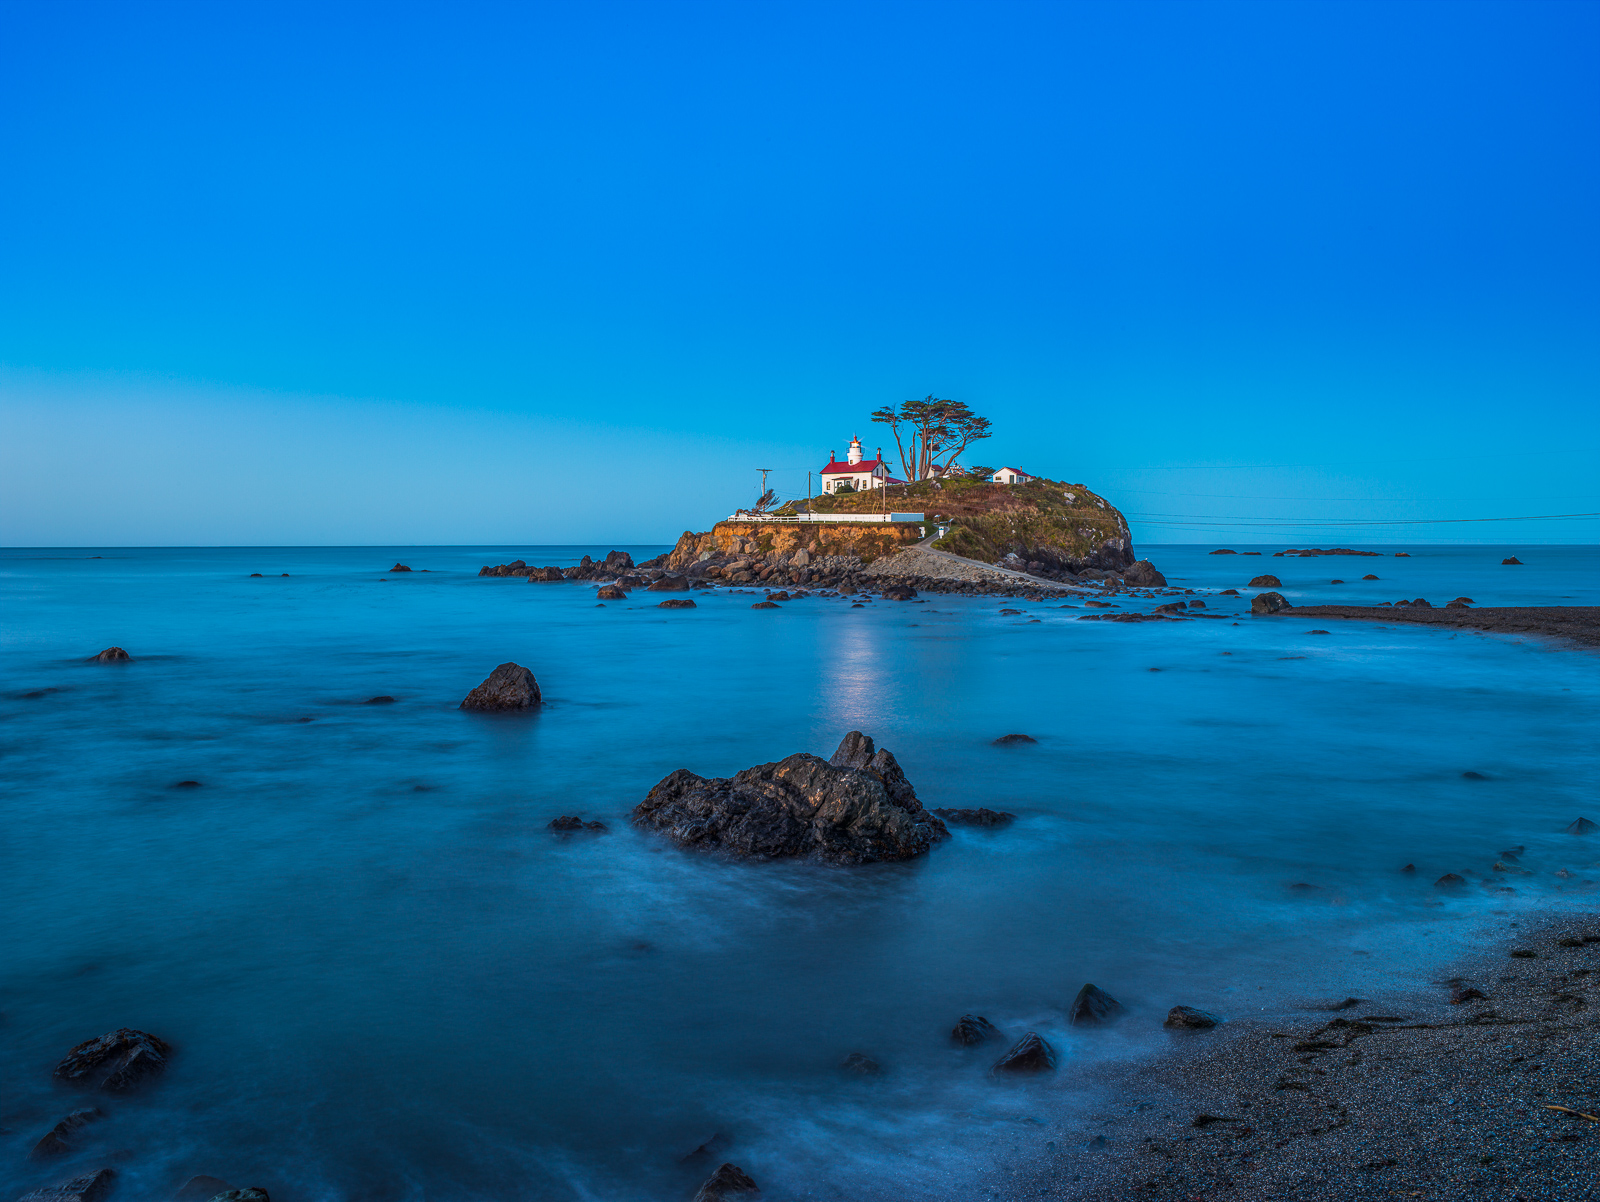 Guiding Light,Battery Point,Blue,Coast,Horizontal,Lighthouse,Pacific Ocean,Red, photo